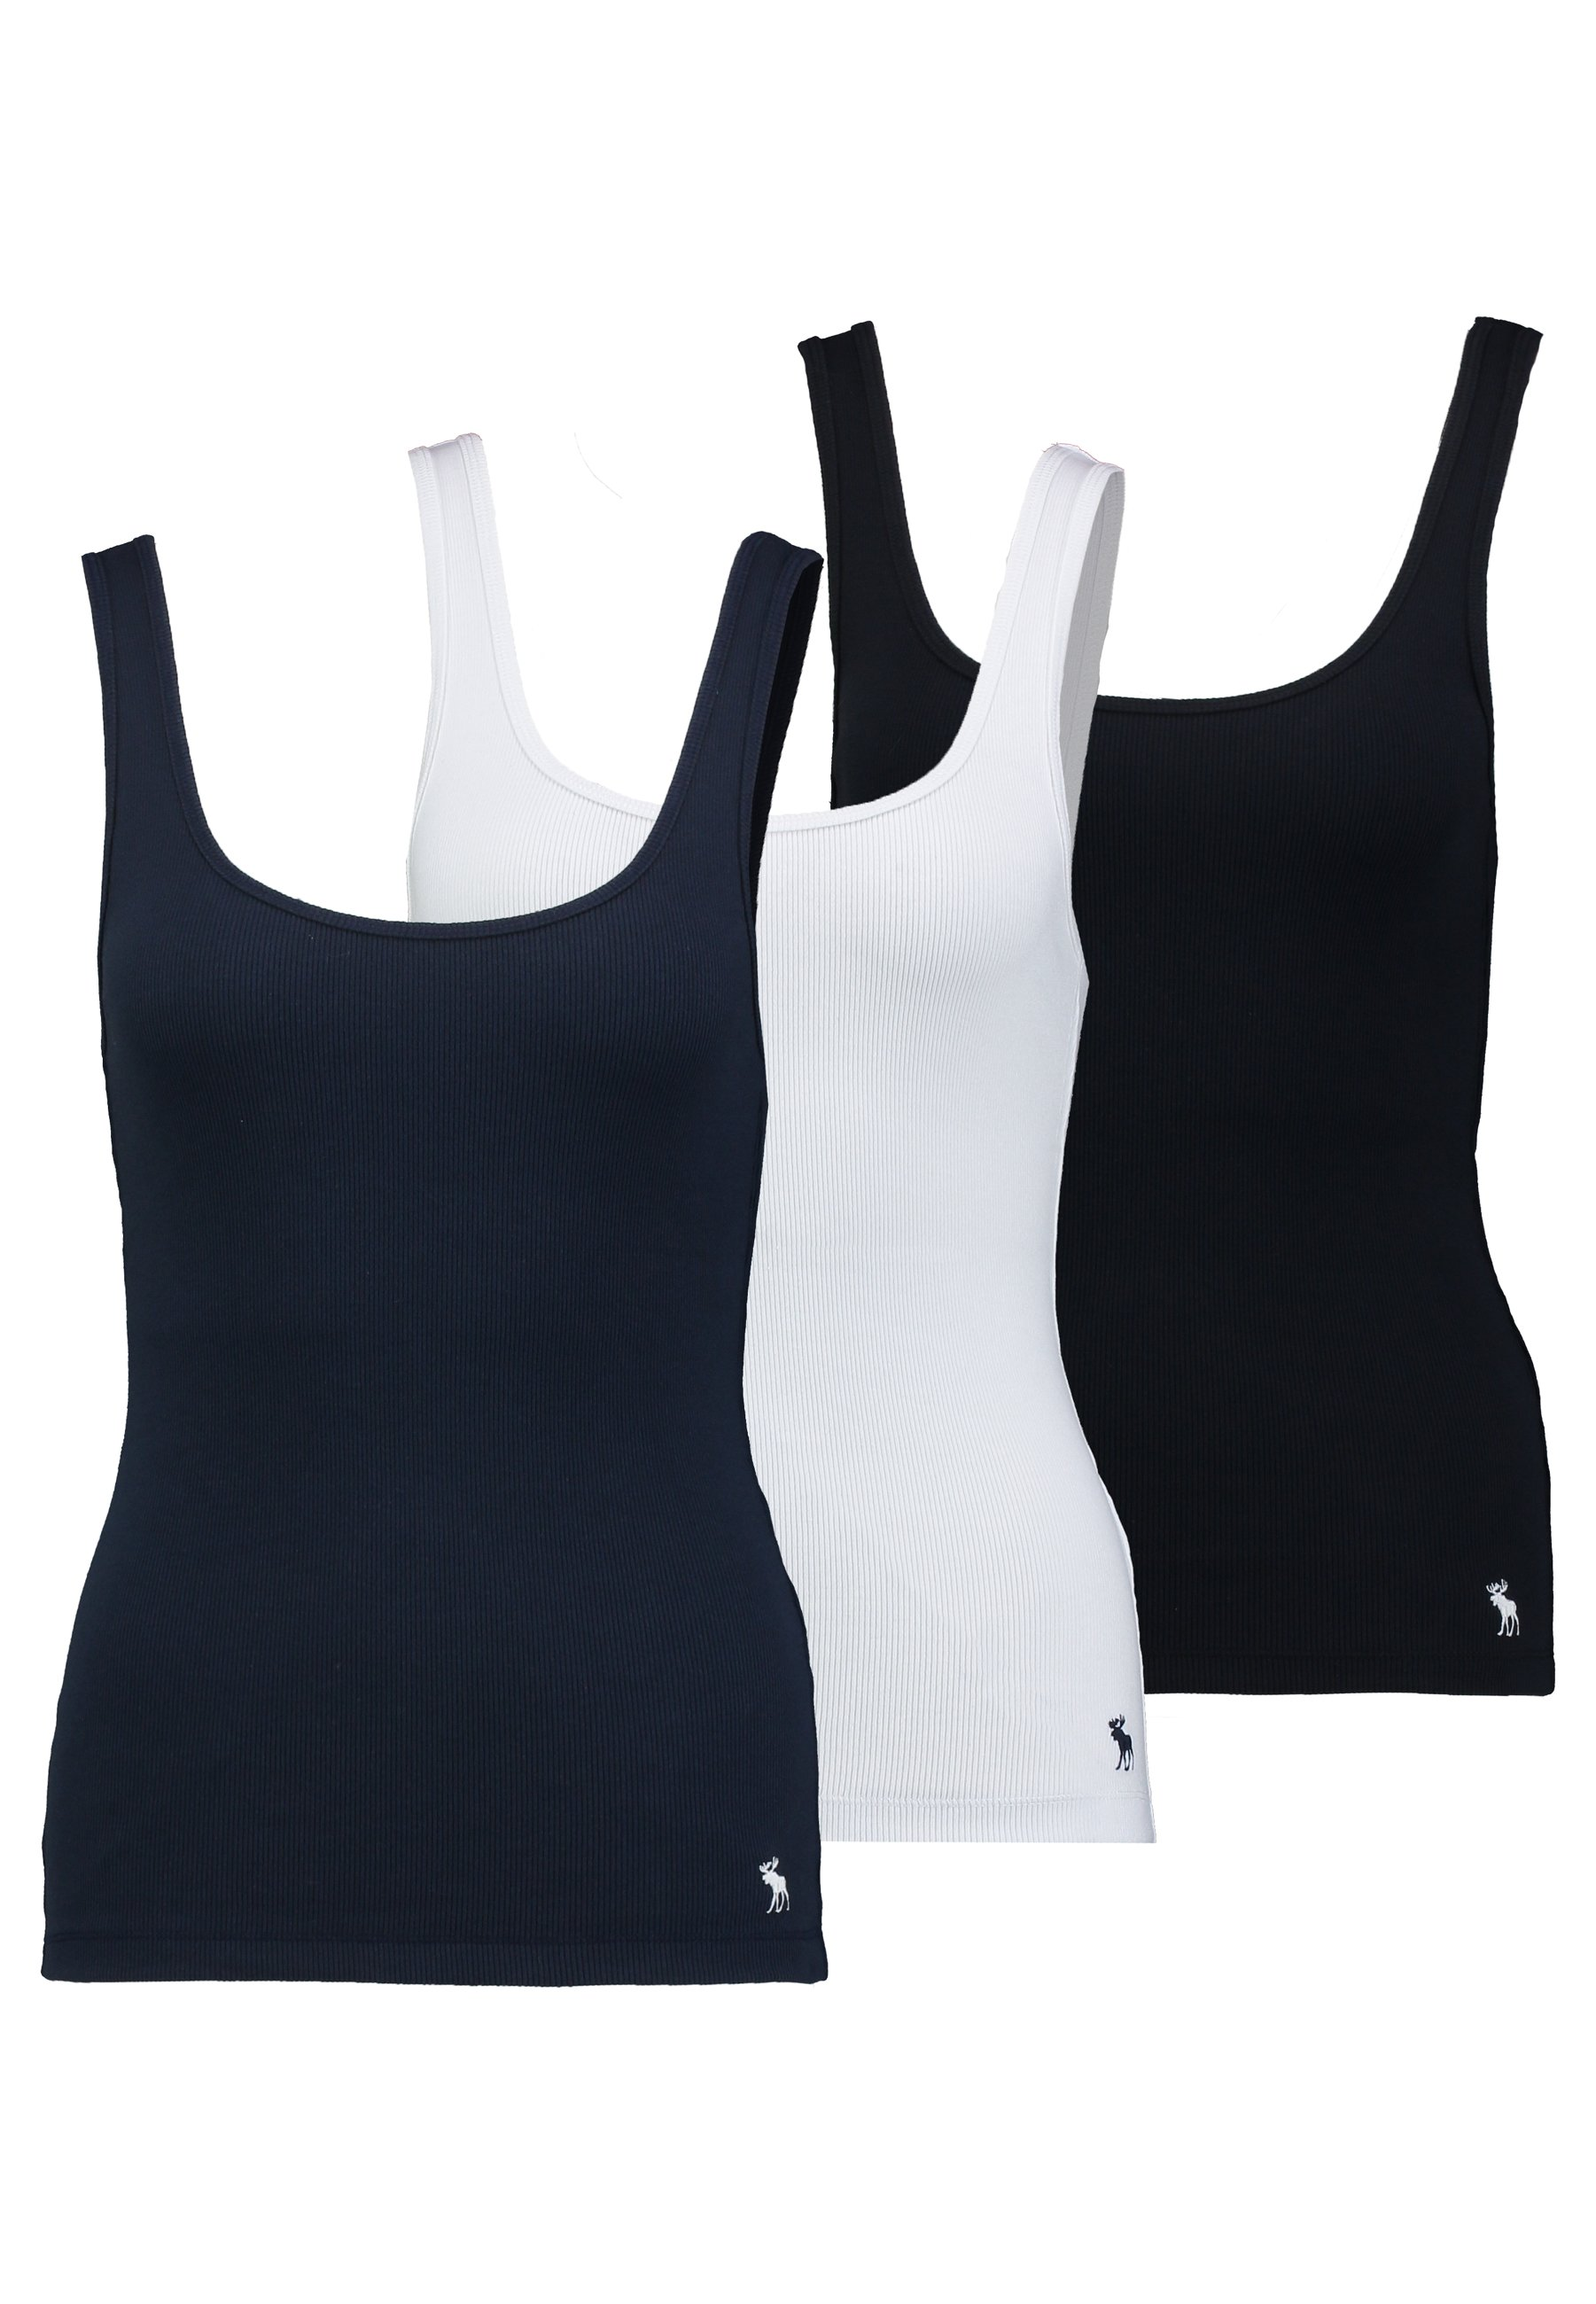 Abercrombie & Fitch BOYTANK 3 PACK - Top - black/white/navy